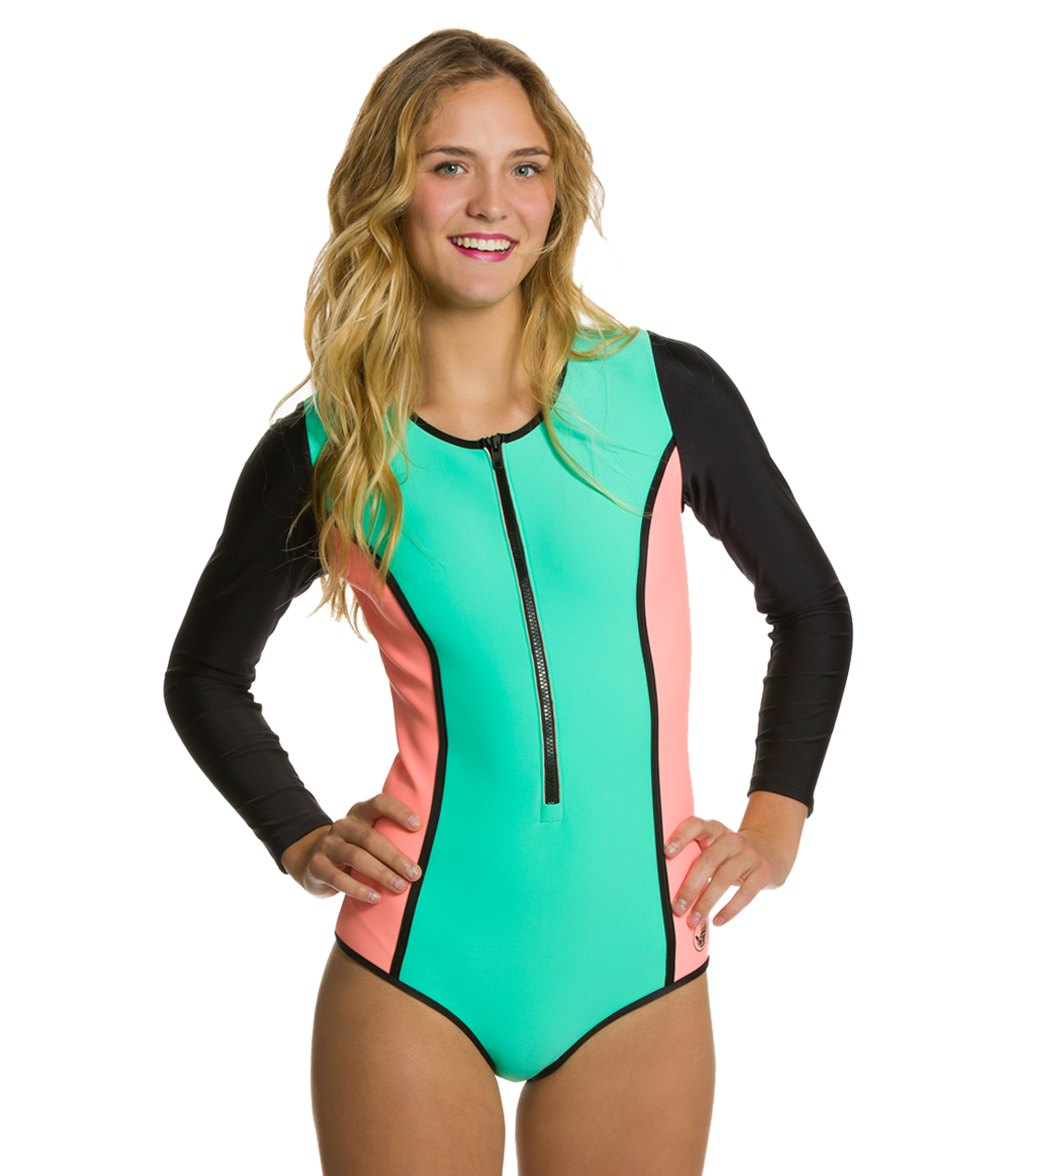 c0b34402a0 Body Glove Womens Neo What Paddle Zip One Piece Swimsuit at SwimOutlet.com  - Free Shipping